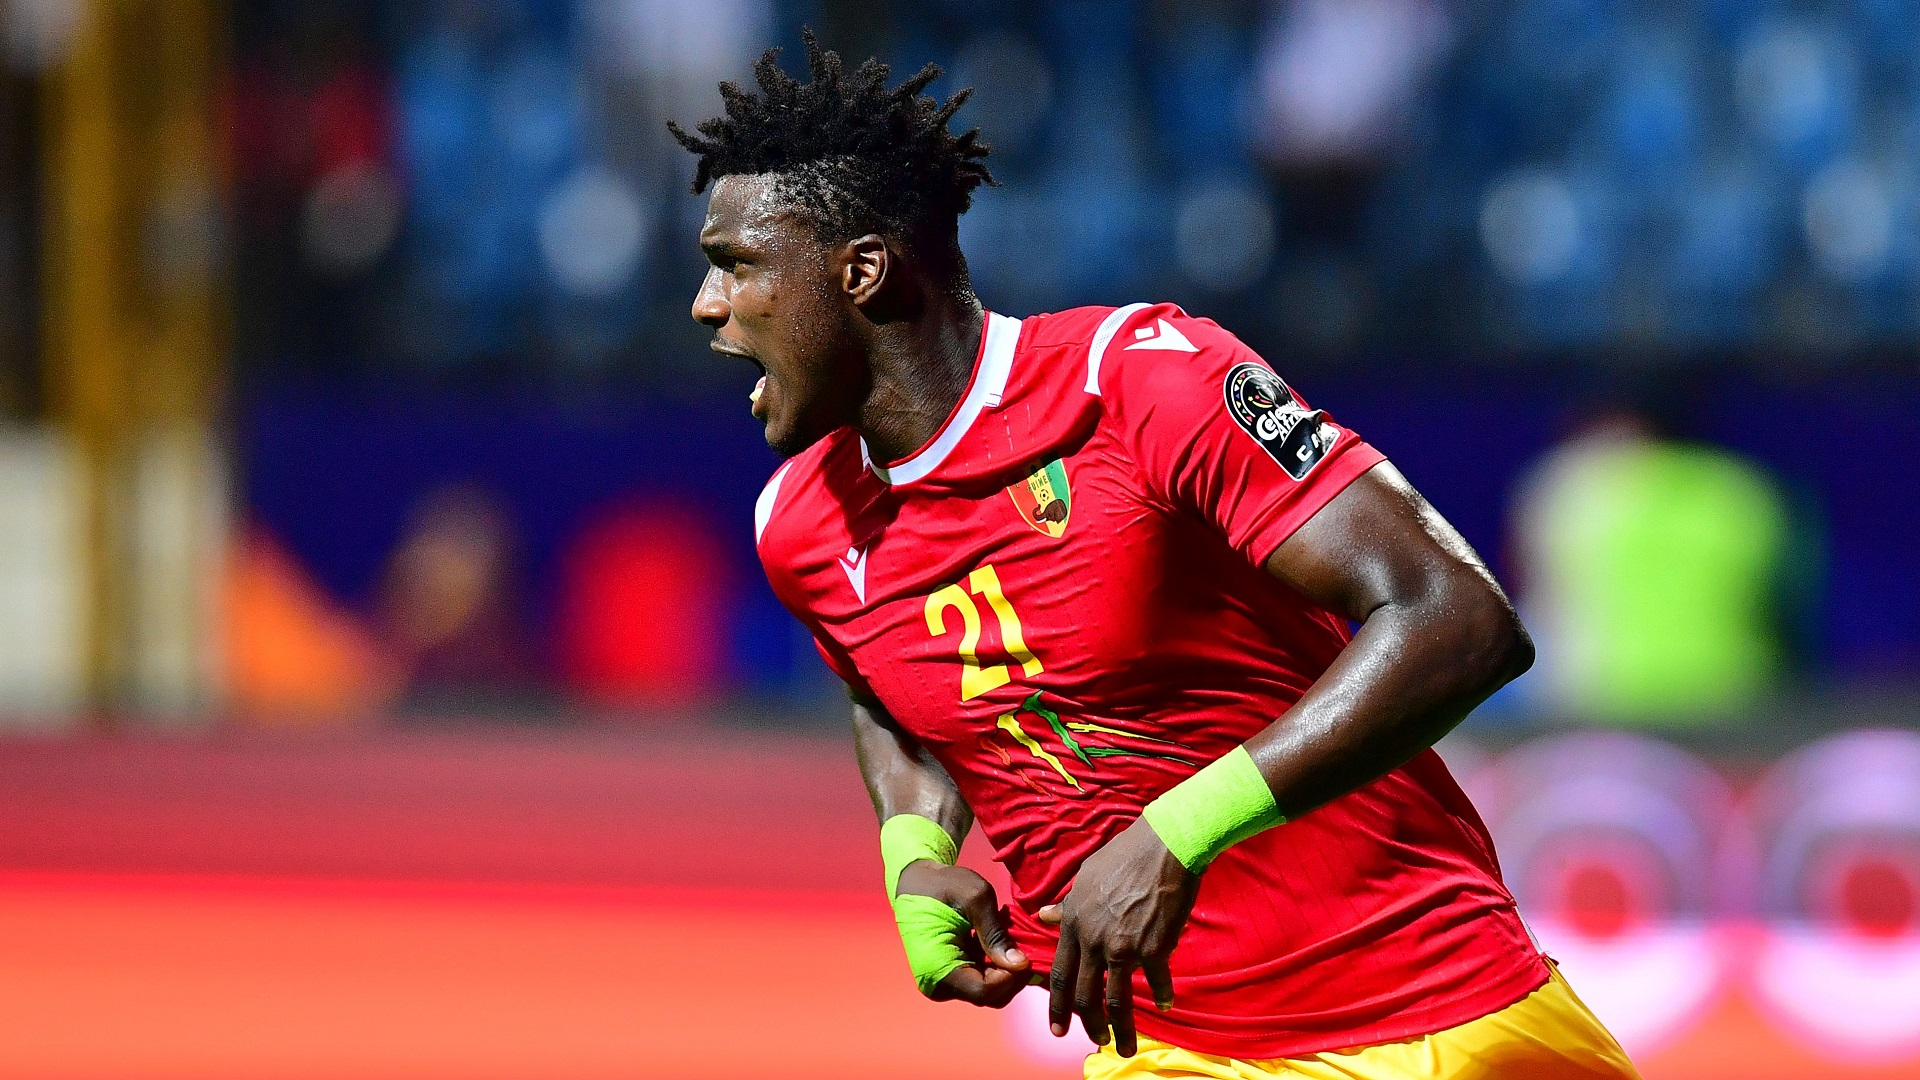 Afcon 2019: Guinea coach Put gives reason for dropping Sory Kaba